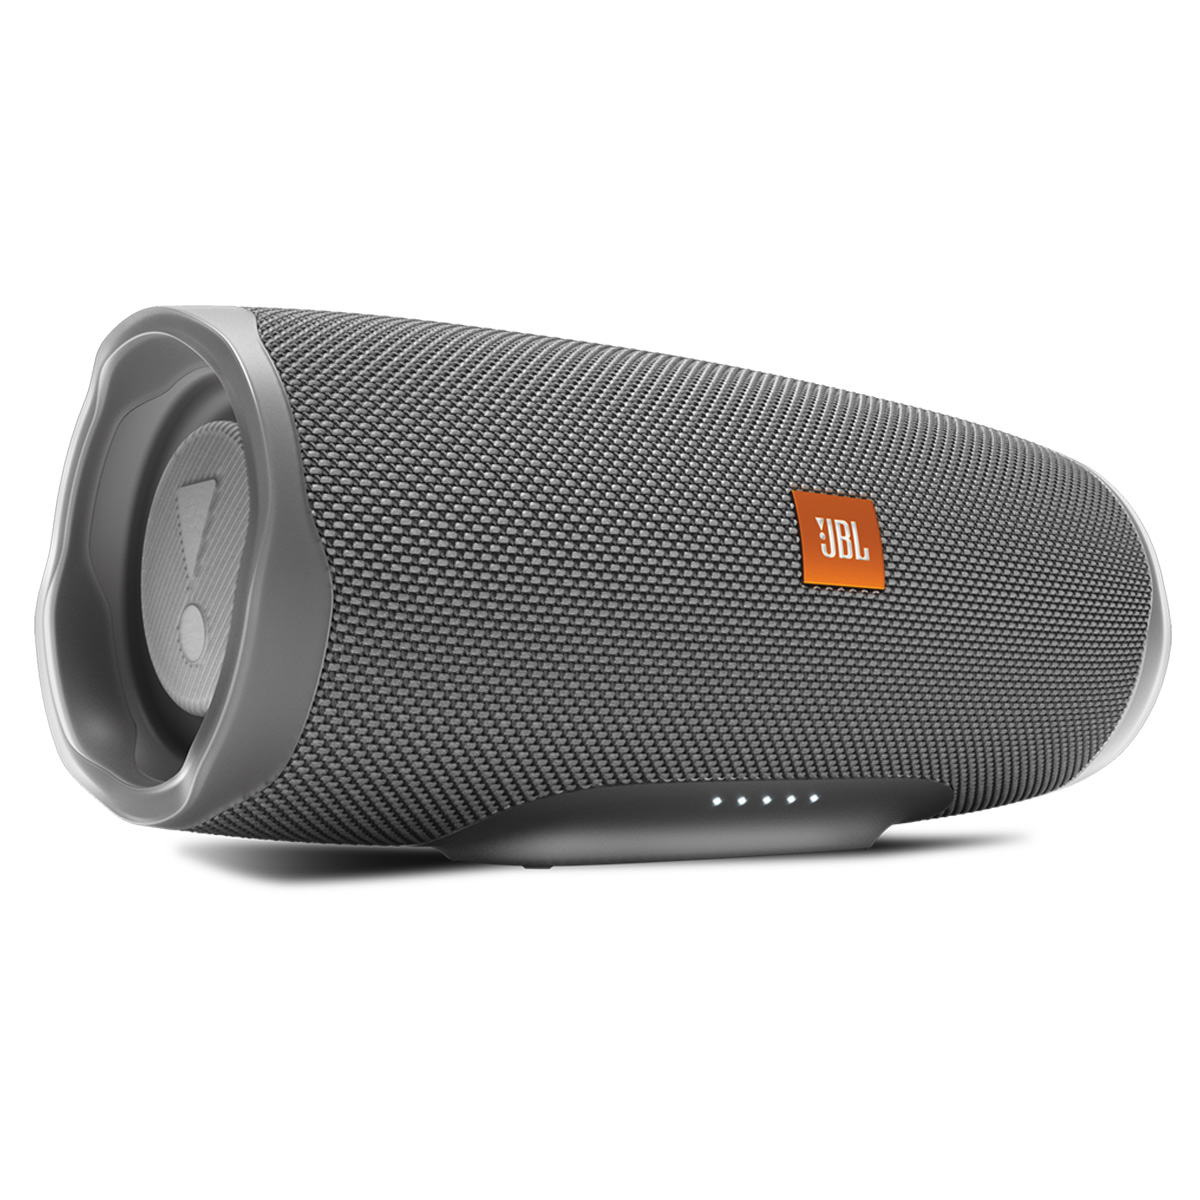 Jbl Bass Jbl Charge 4 Waterproof Portable Wireless Bluetooth Speaker Bundle Pair